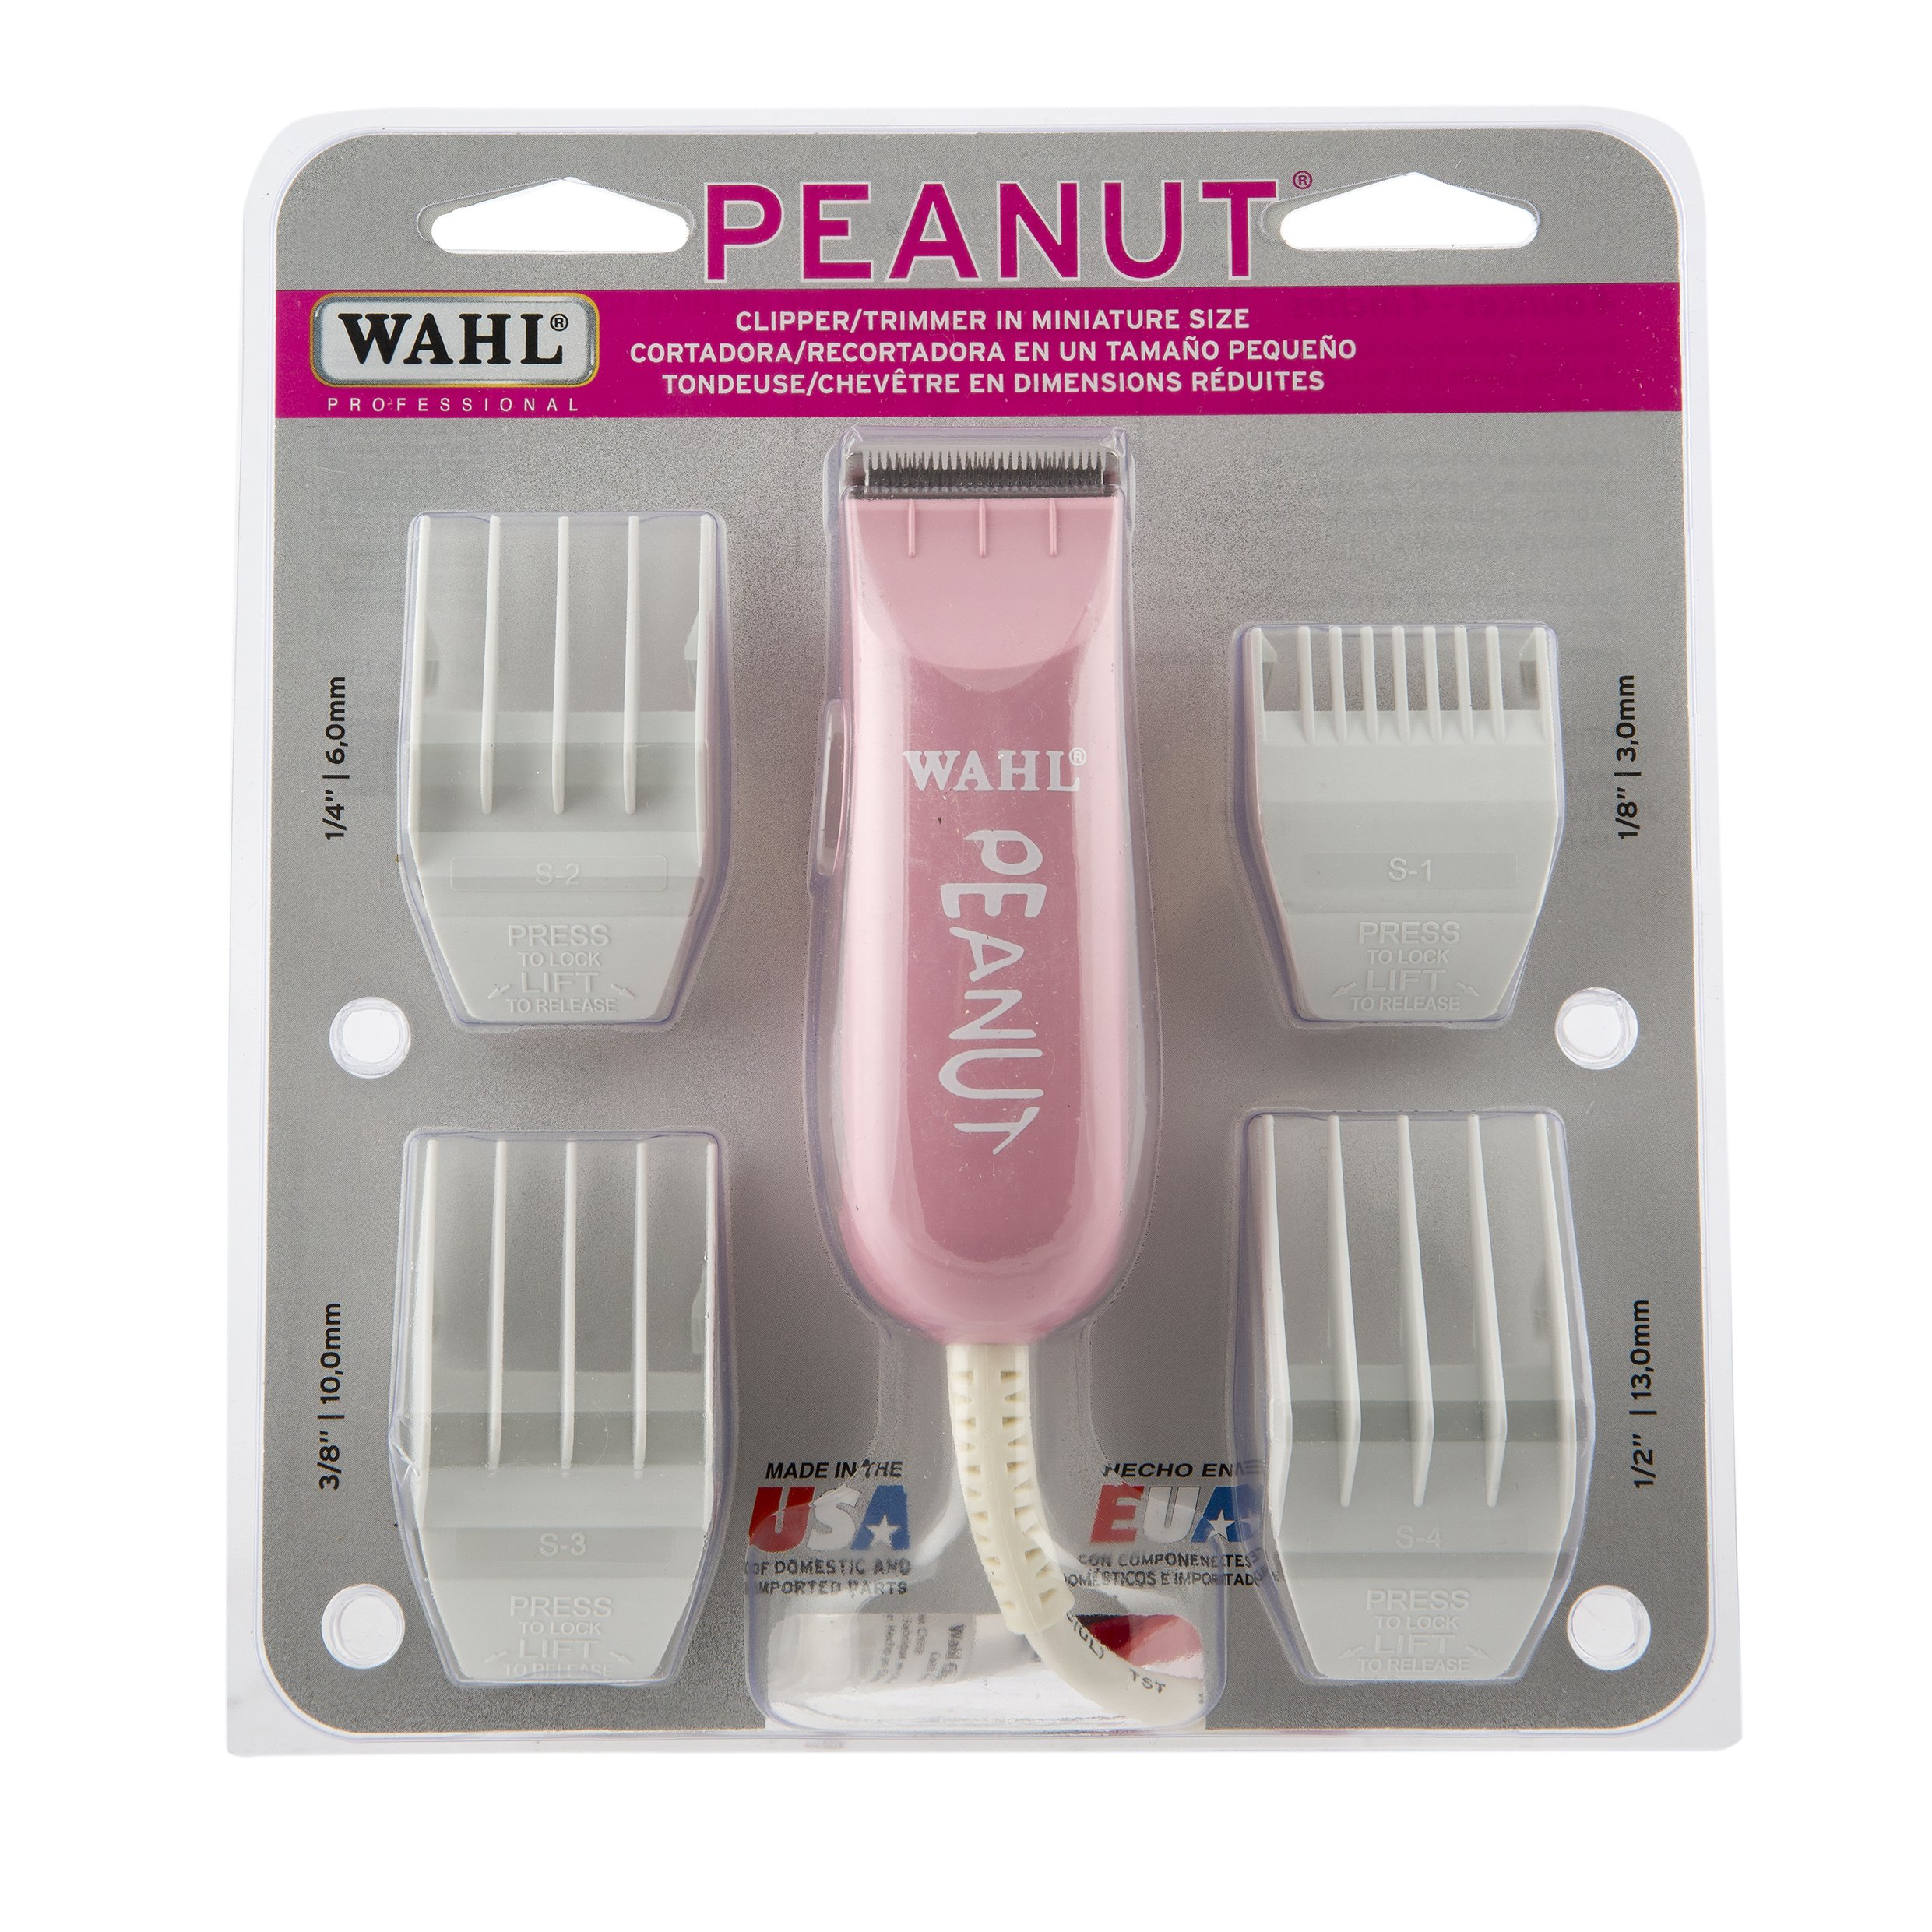 Wahl Professional Peanut Clipper/Trimmer #8655-1301, Pink – Great On-the-Go Trimmer for Barbers and Stylists – Powerful Rotary Motor